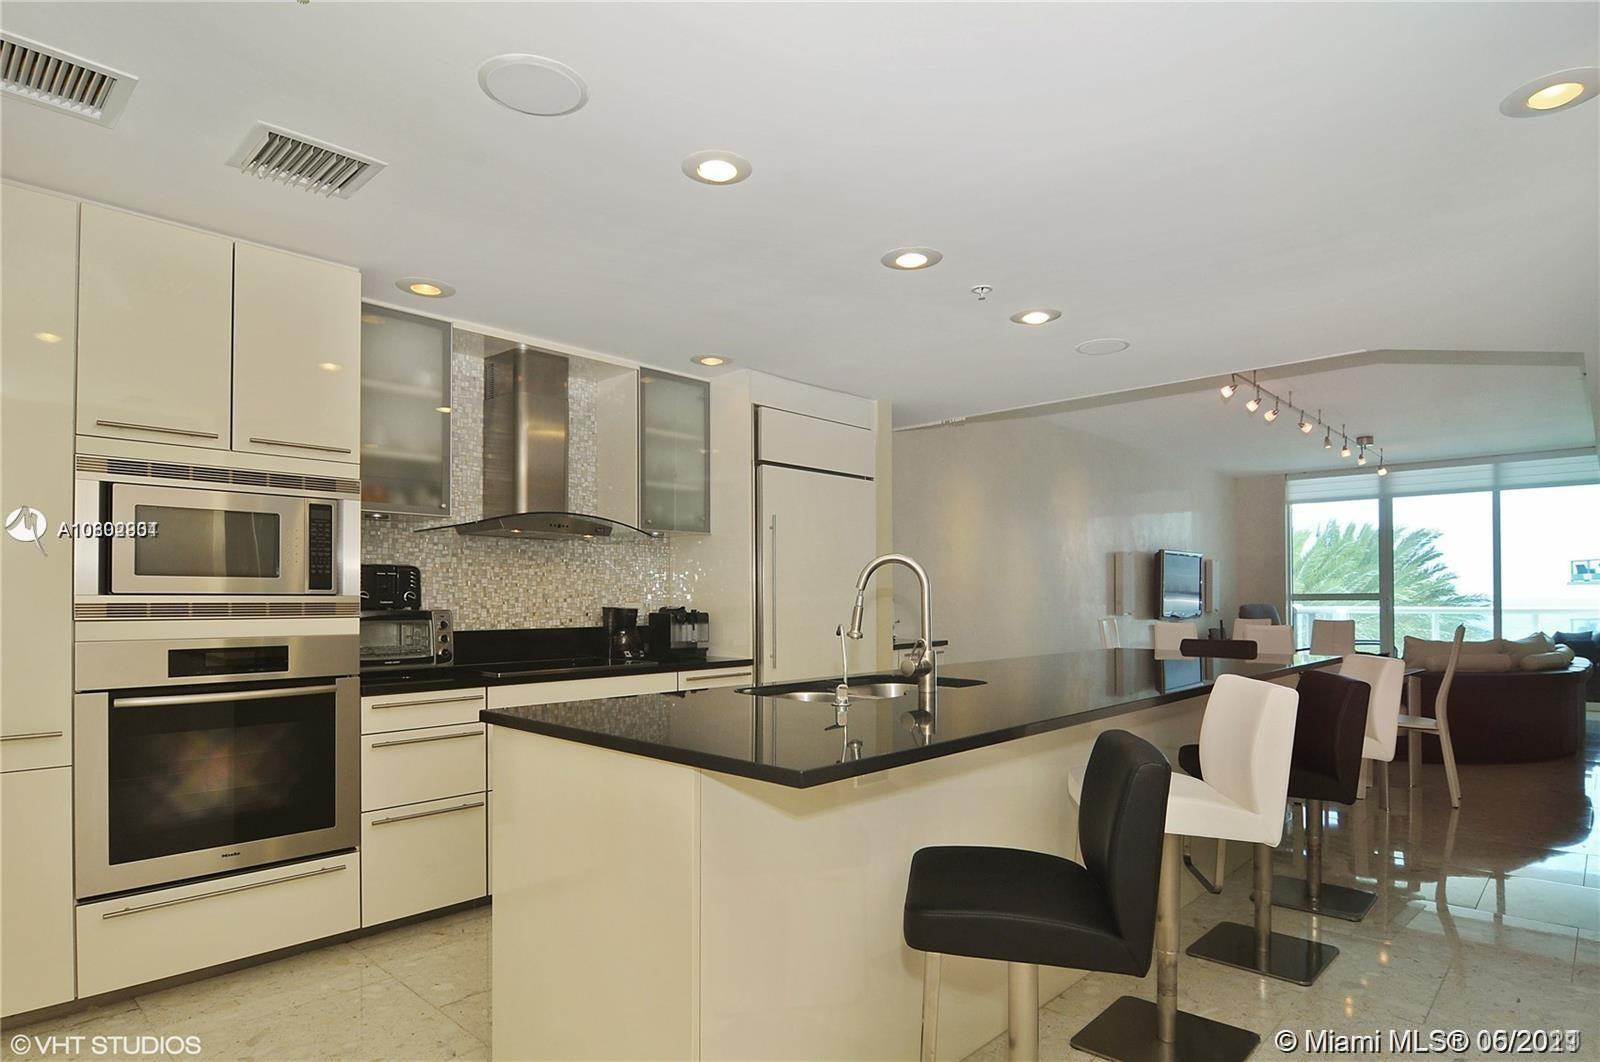 VACANT AND EASY TO SHOW!!MOTIVATED SELLER**TURN KEY UNIT!! @ the heart of Miami Beach, 3 Beds, 3 Baths, 1661 Sq/Ft (LA by developer's floor plan), 2 Balconies, Private elevator, Private foyer, Exclusive European Miele Appliances, Marble floors, Smart technology System. Come and see this Beautiful unit and enjoy all the amenities offered by Mosaic Building, Fitness center, Business Center, Media Room and a lot more. The unit is located in front of the beach (Just Steps away), Great Location, minutes away from Downtown Miami, Brickell, Bal Harbour, Aventura